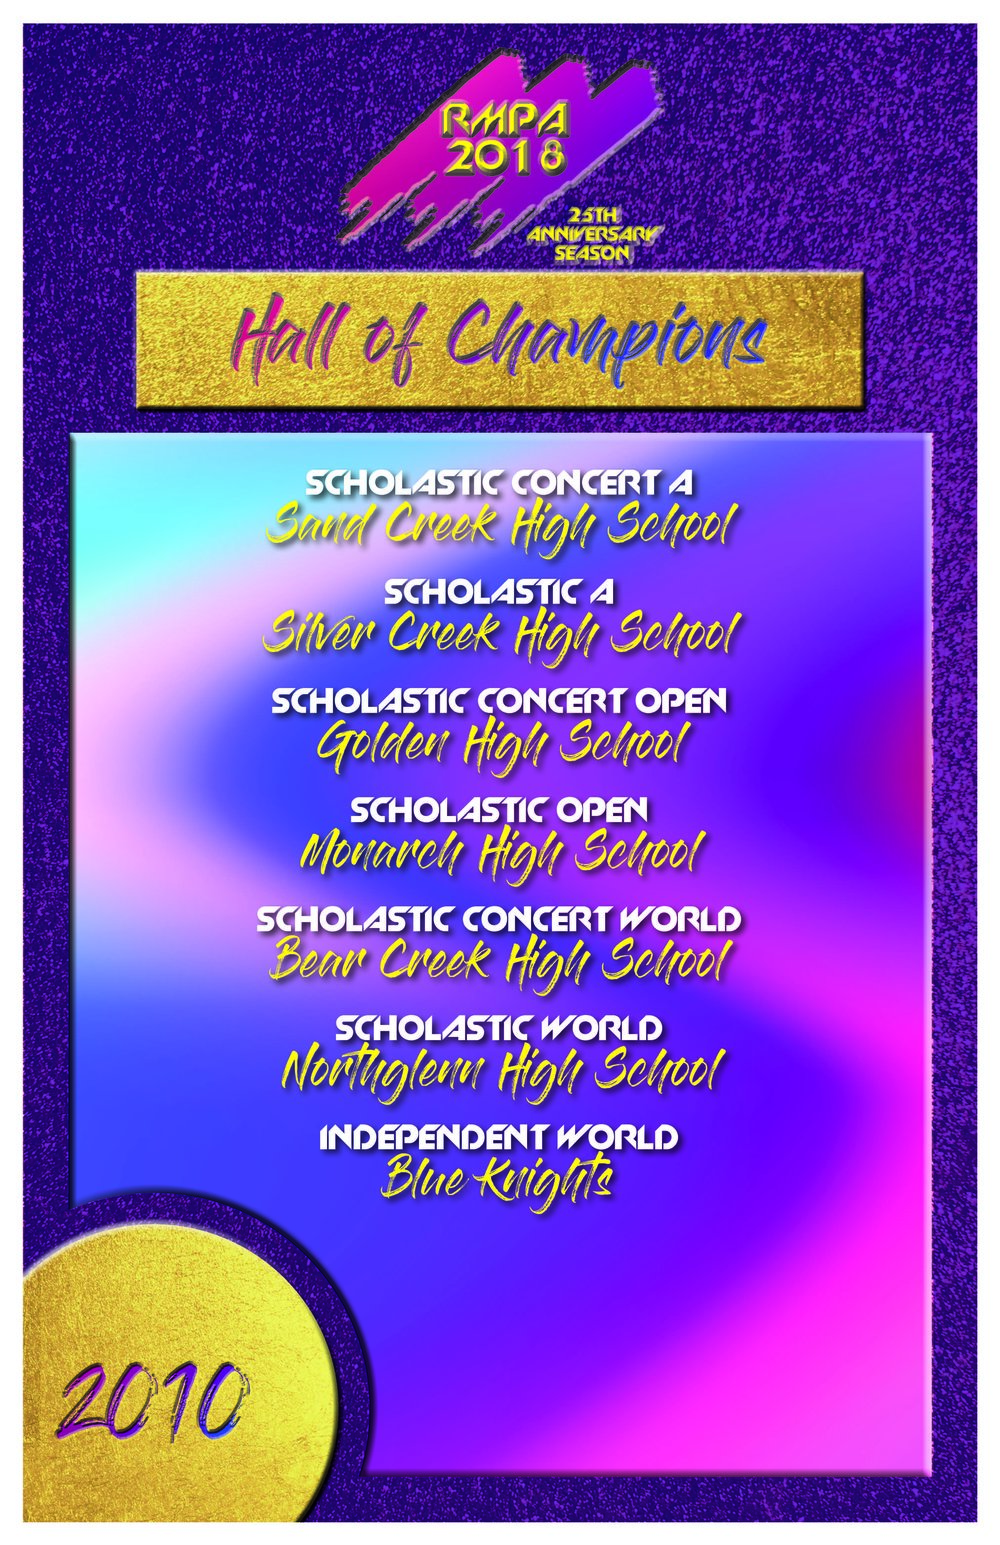 Hall of Champions Posters_Page_18.jpg